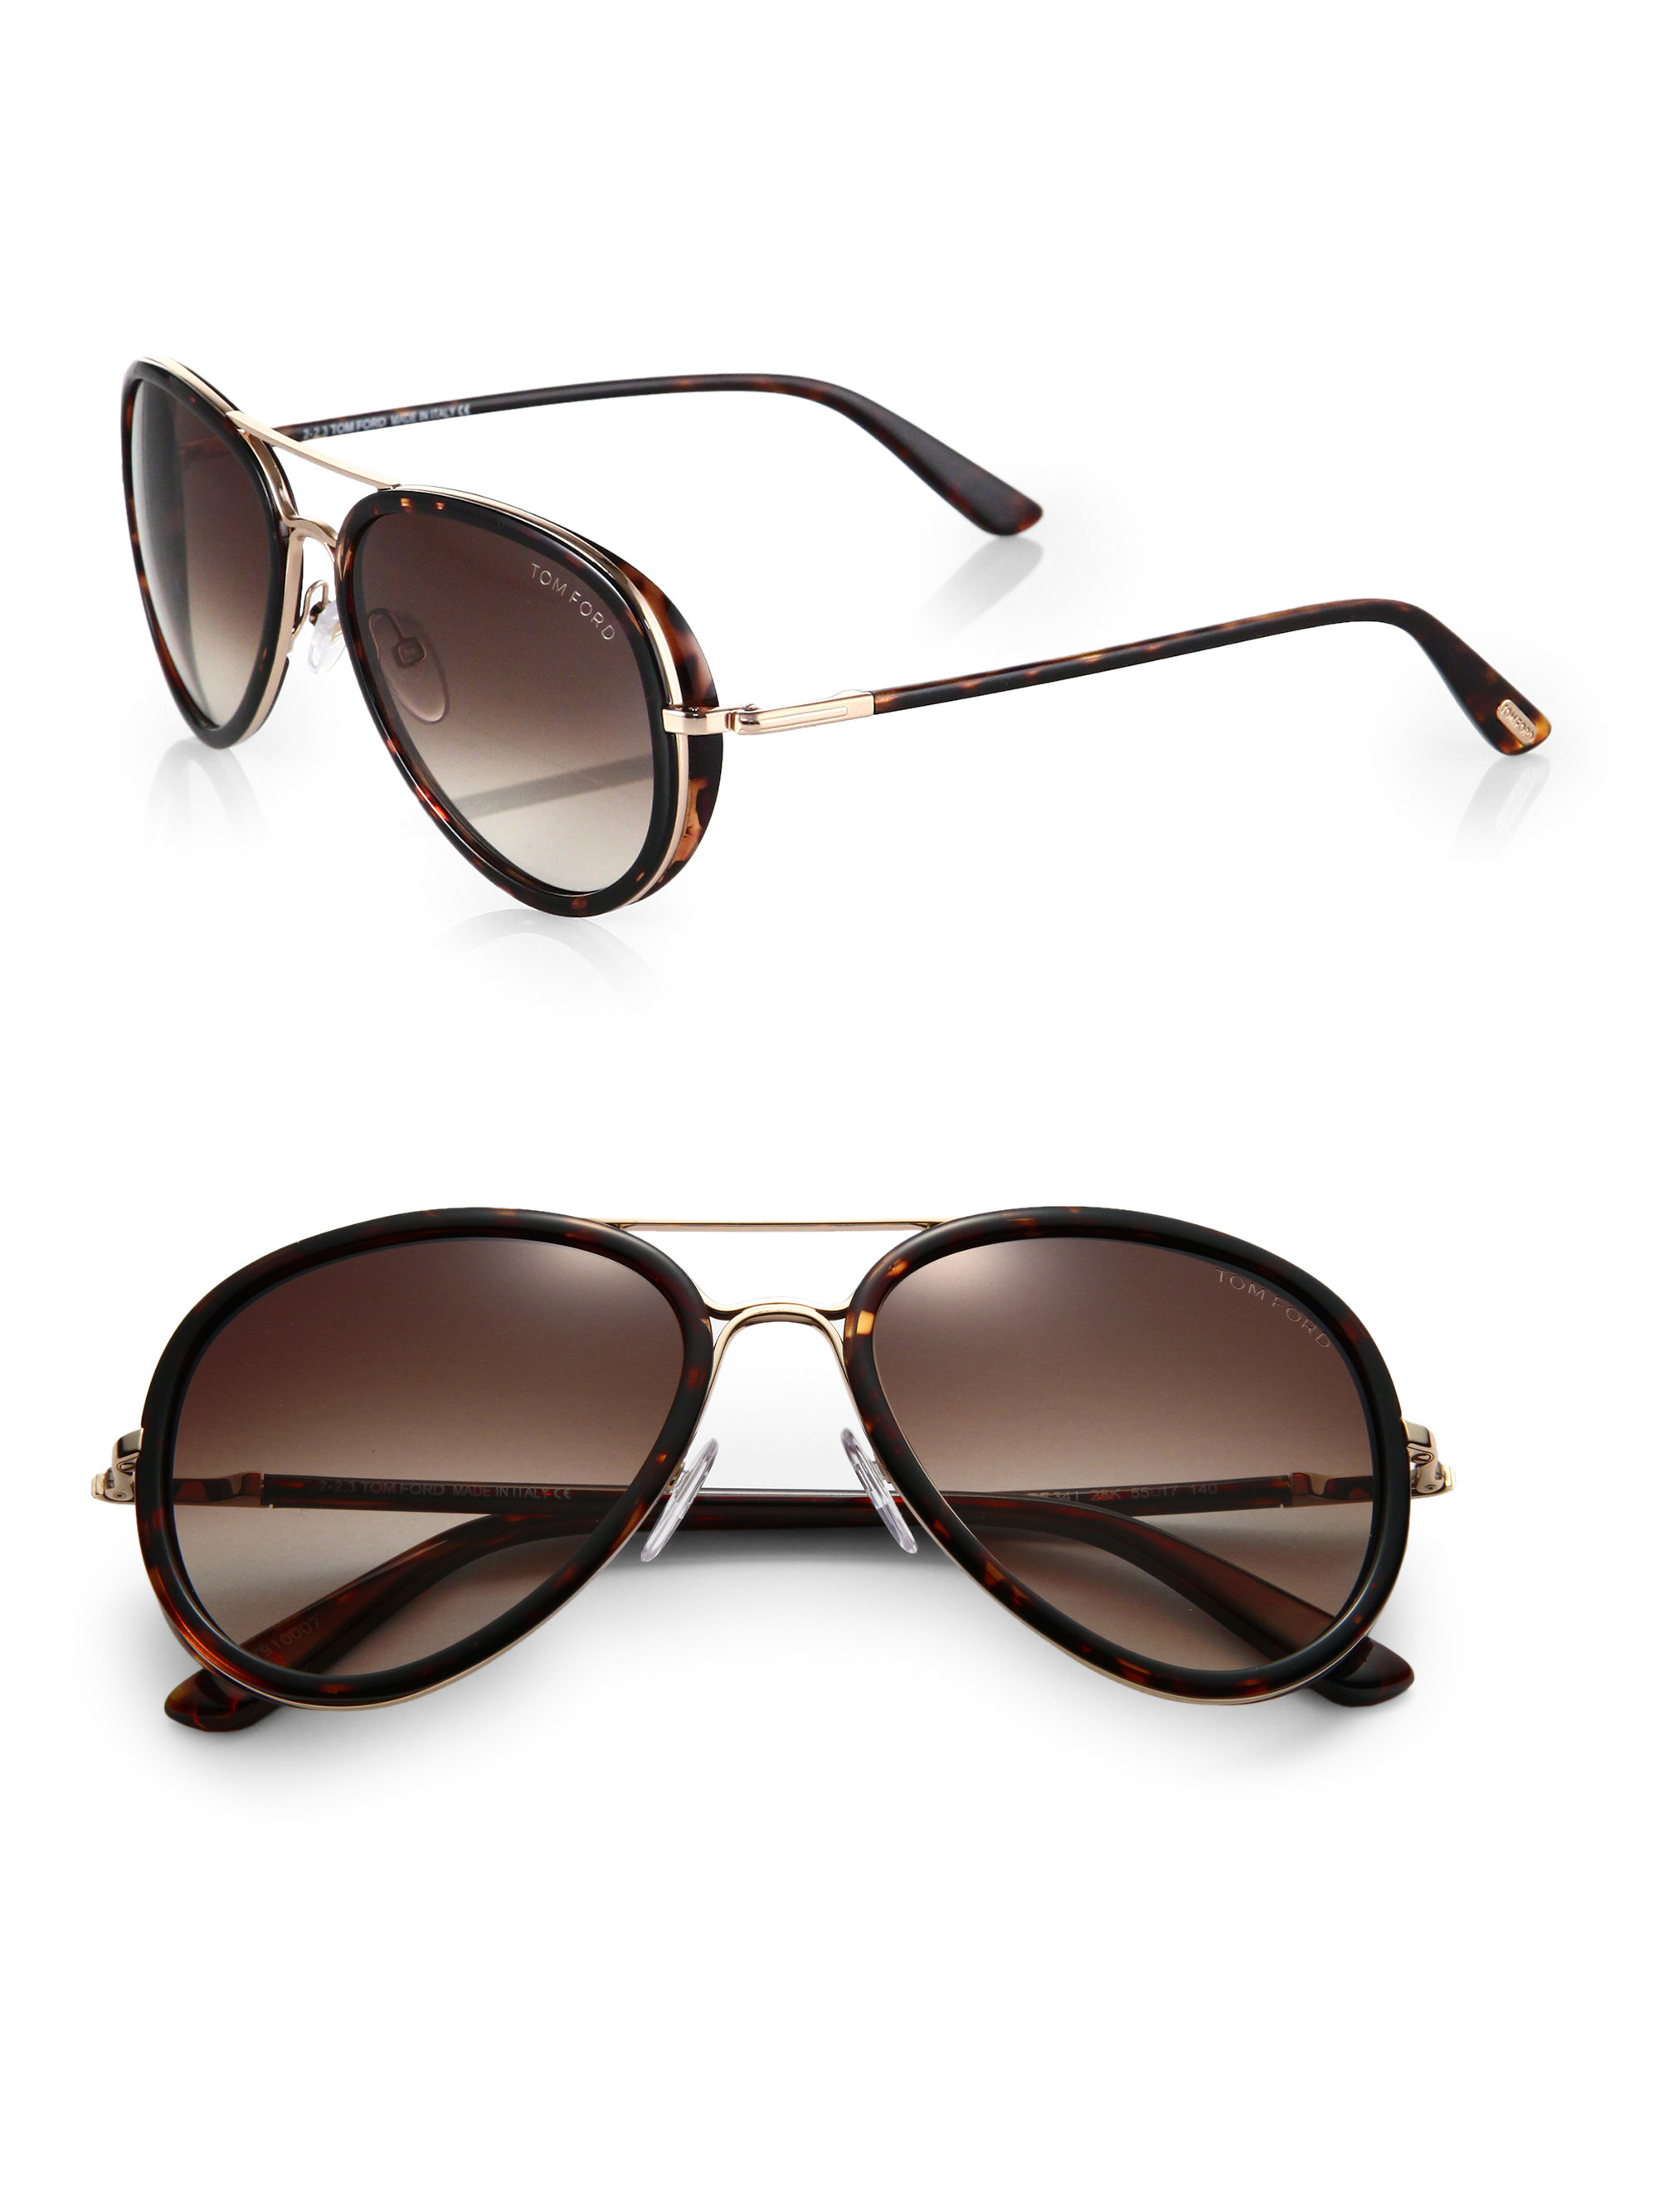 Find discount tom ford sunglasses at ShopStyle. Shop the latest collection of discount tom ford sunglasses from the most popular stores - all in one.